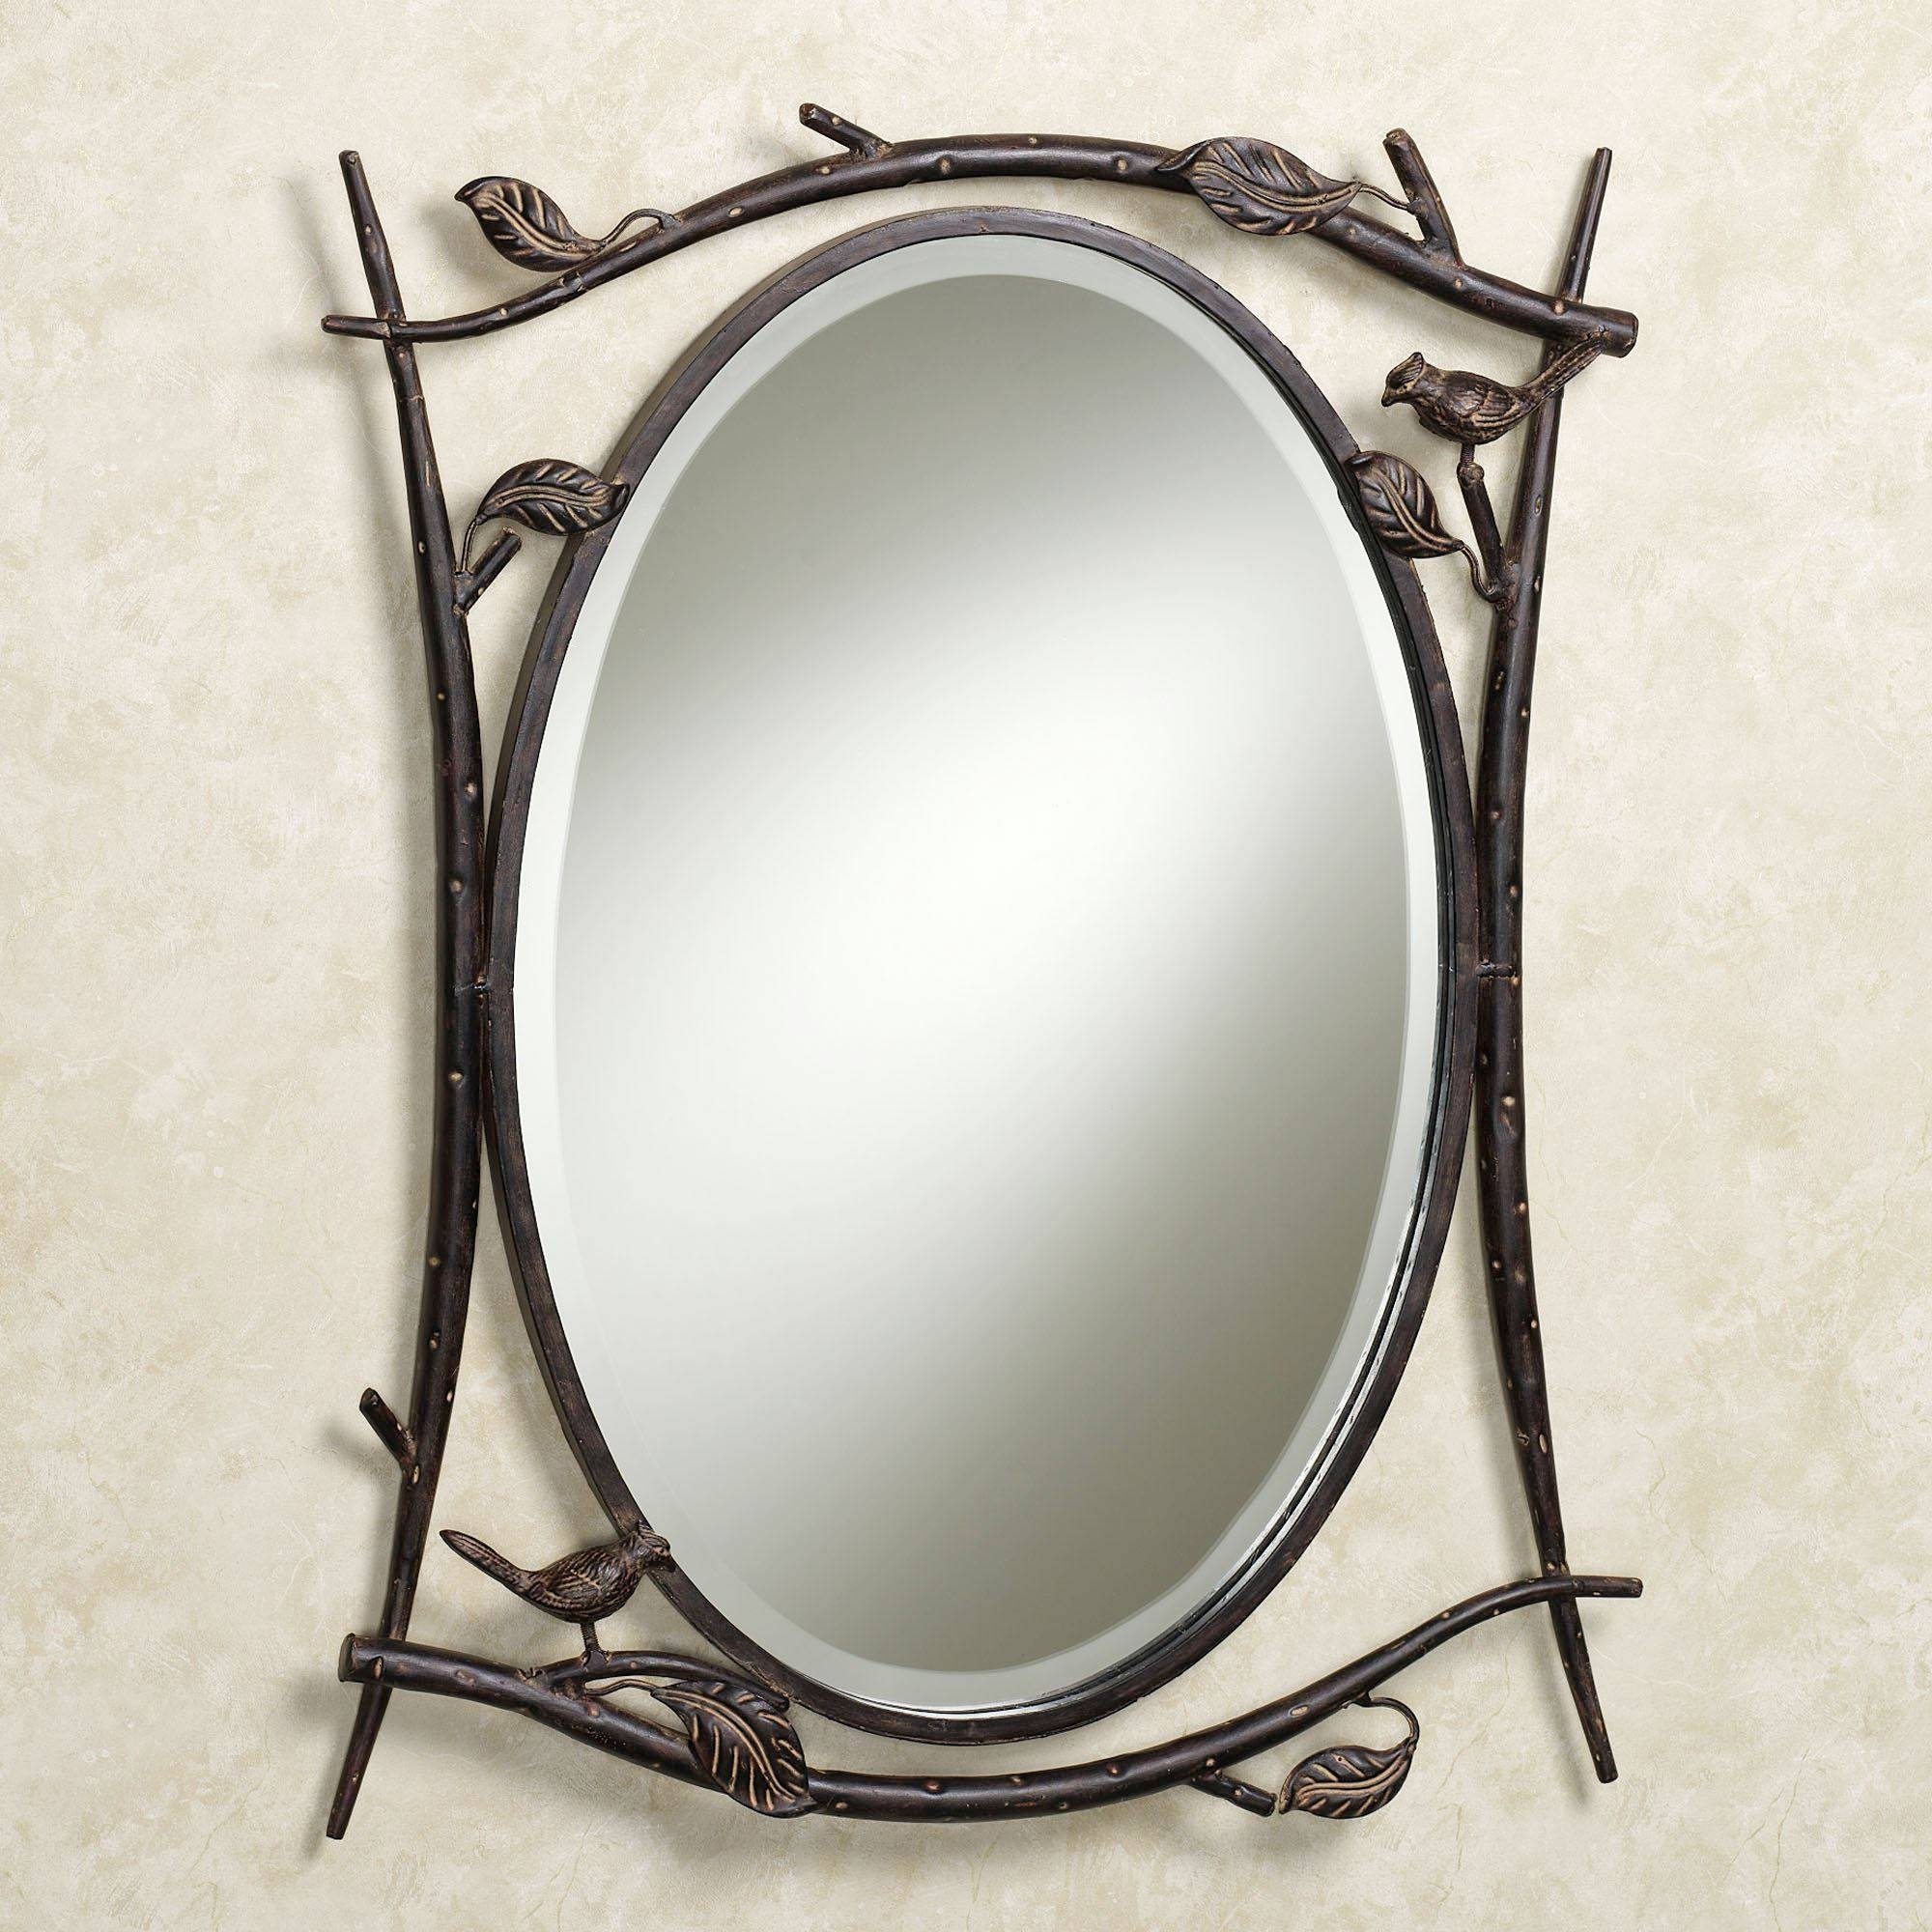 Rustic Patio Designs, Shabby Chic Wall Mirrors Rustic Essence Wall in Oval Shabby Chic Mirrors (Image 16 of 25)